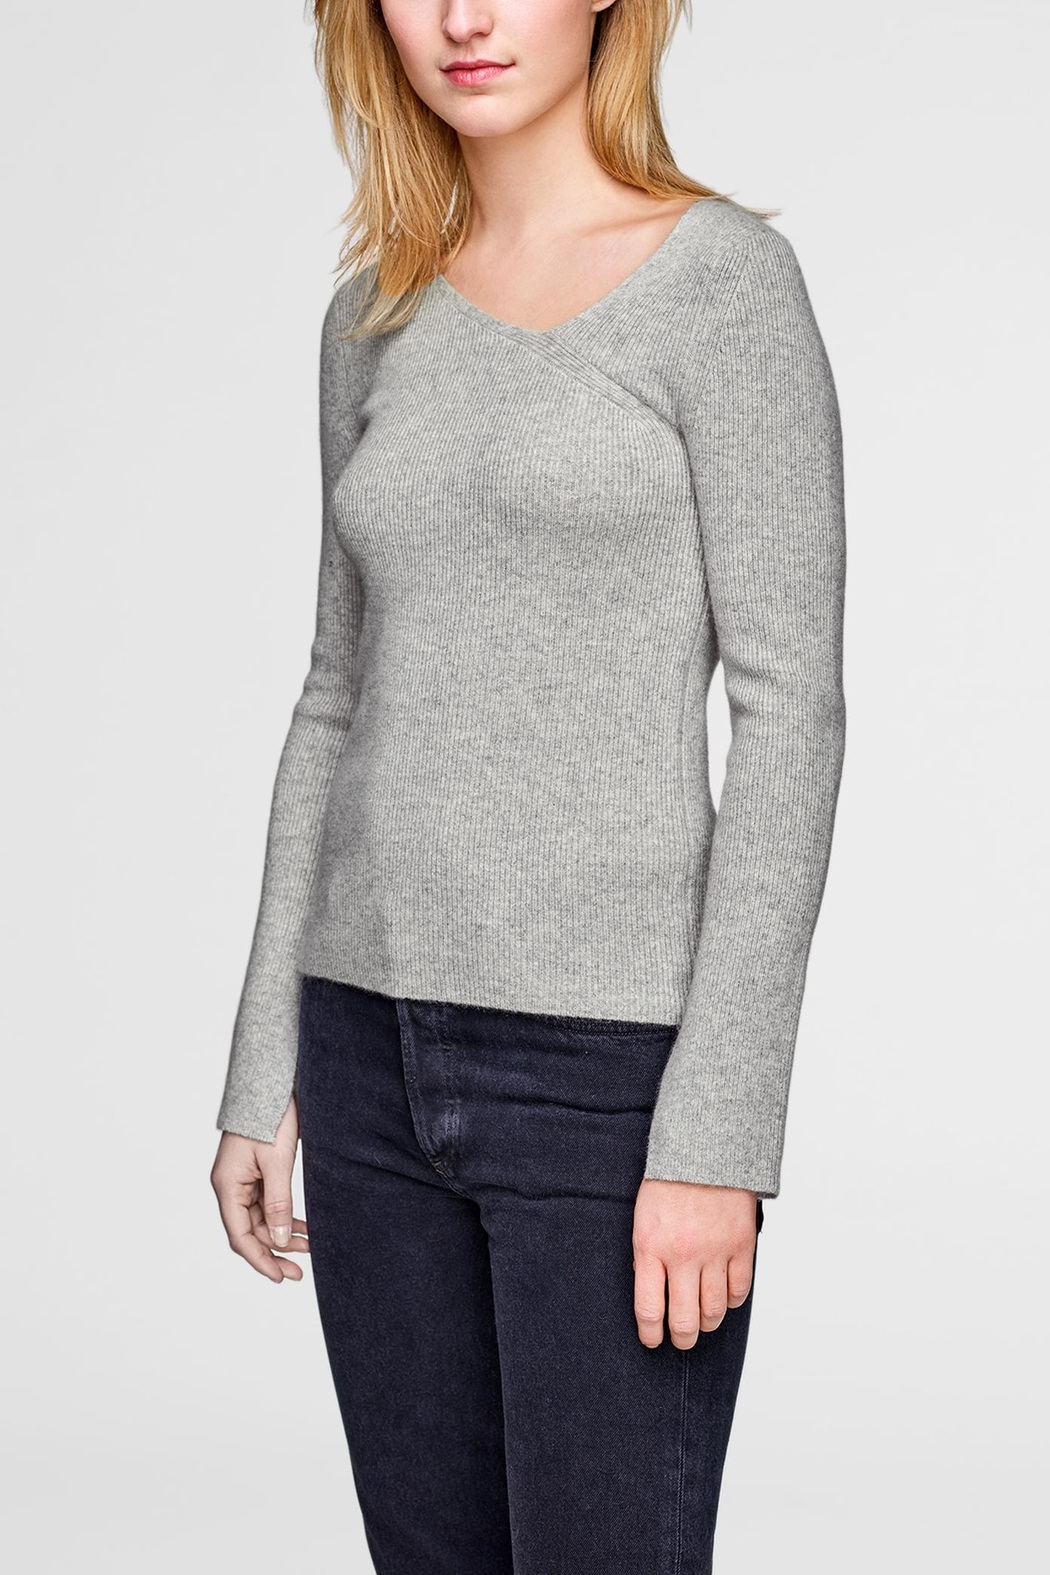 White + Warren Asymmetrical Neck Pullover - Main Image